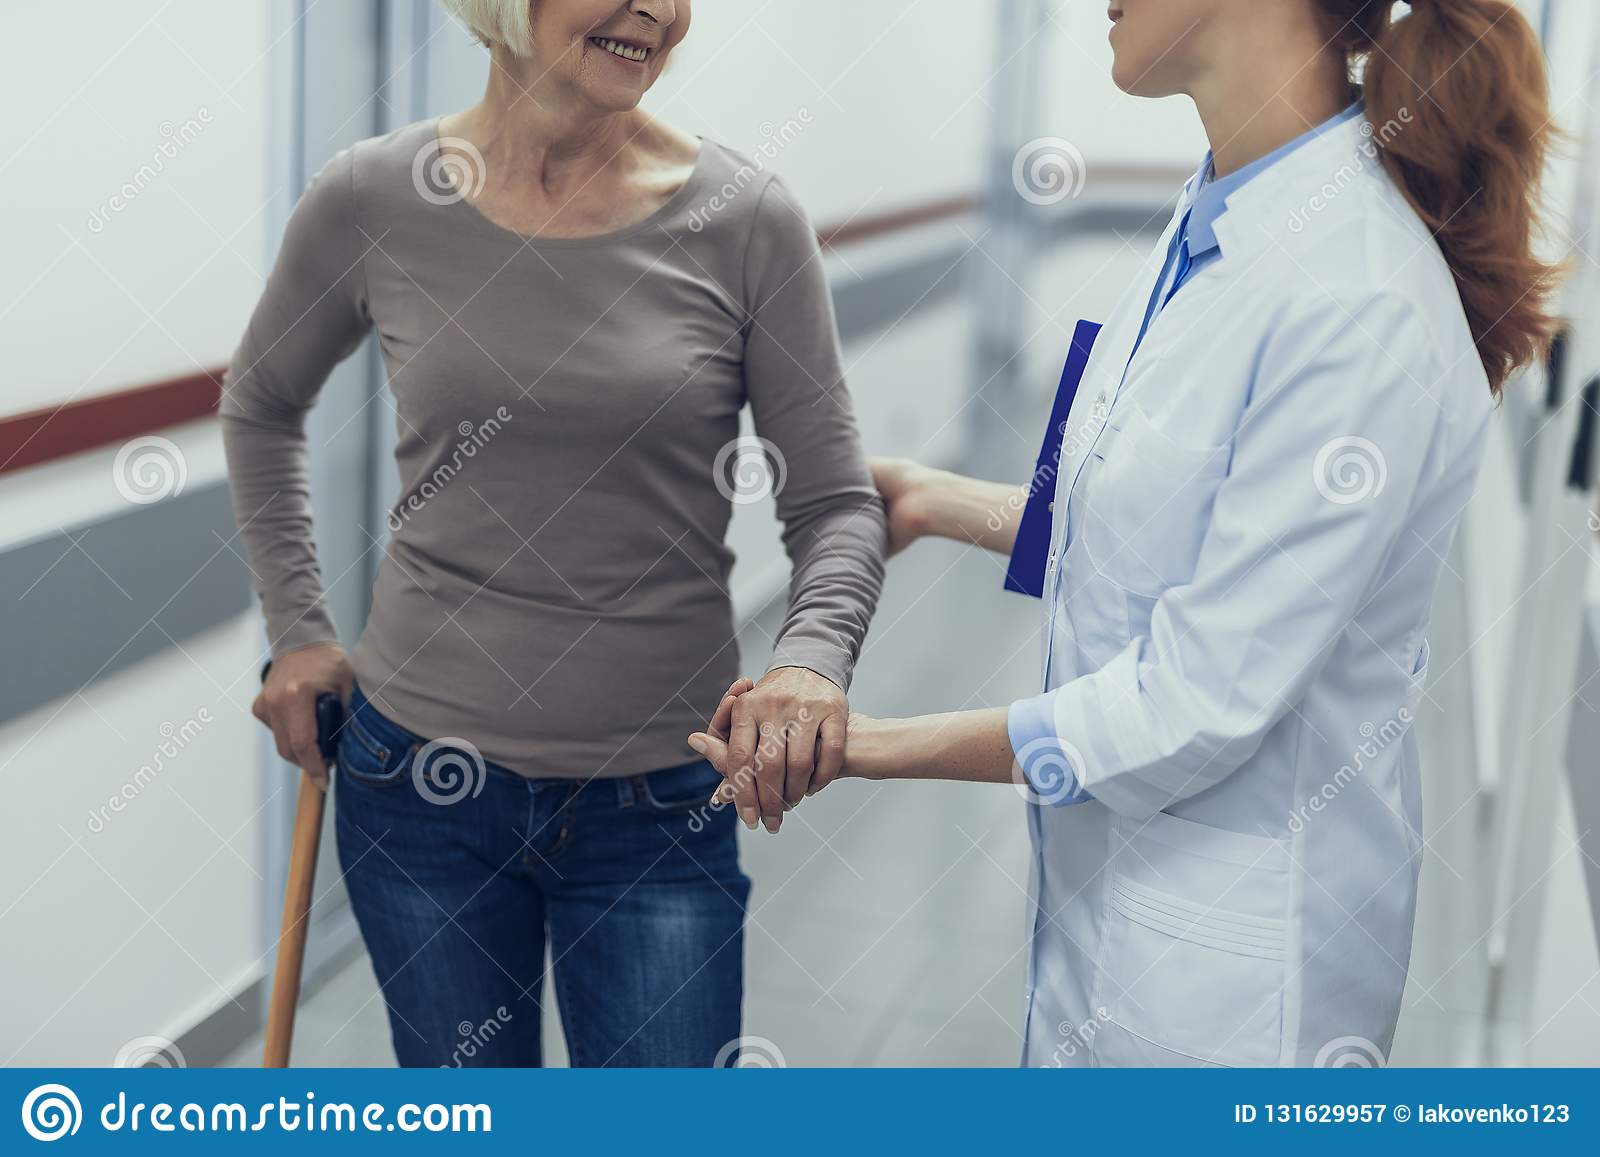 Female doctor is supporting aged lady by hand